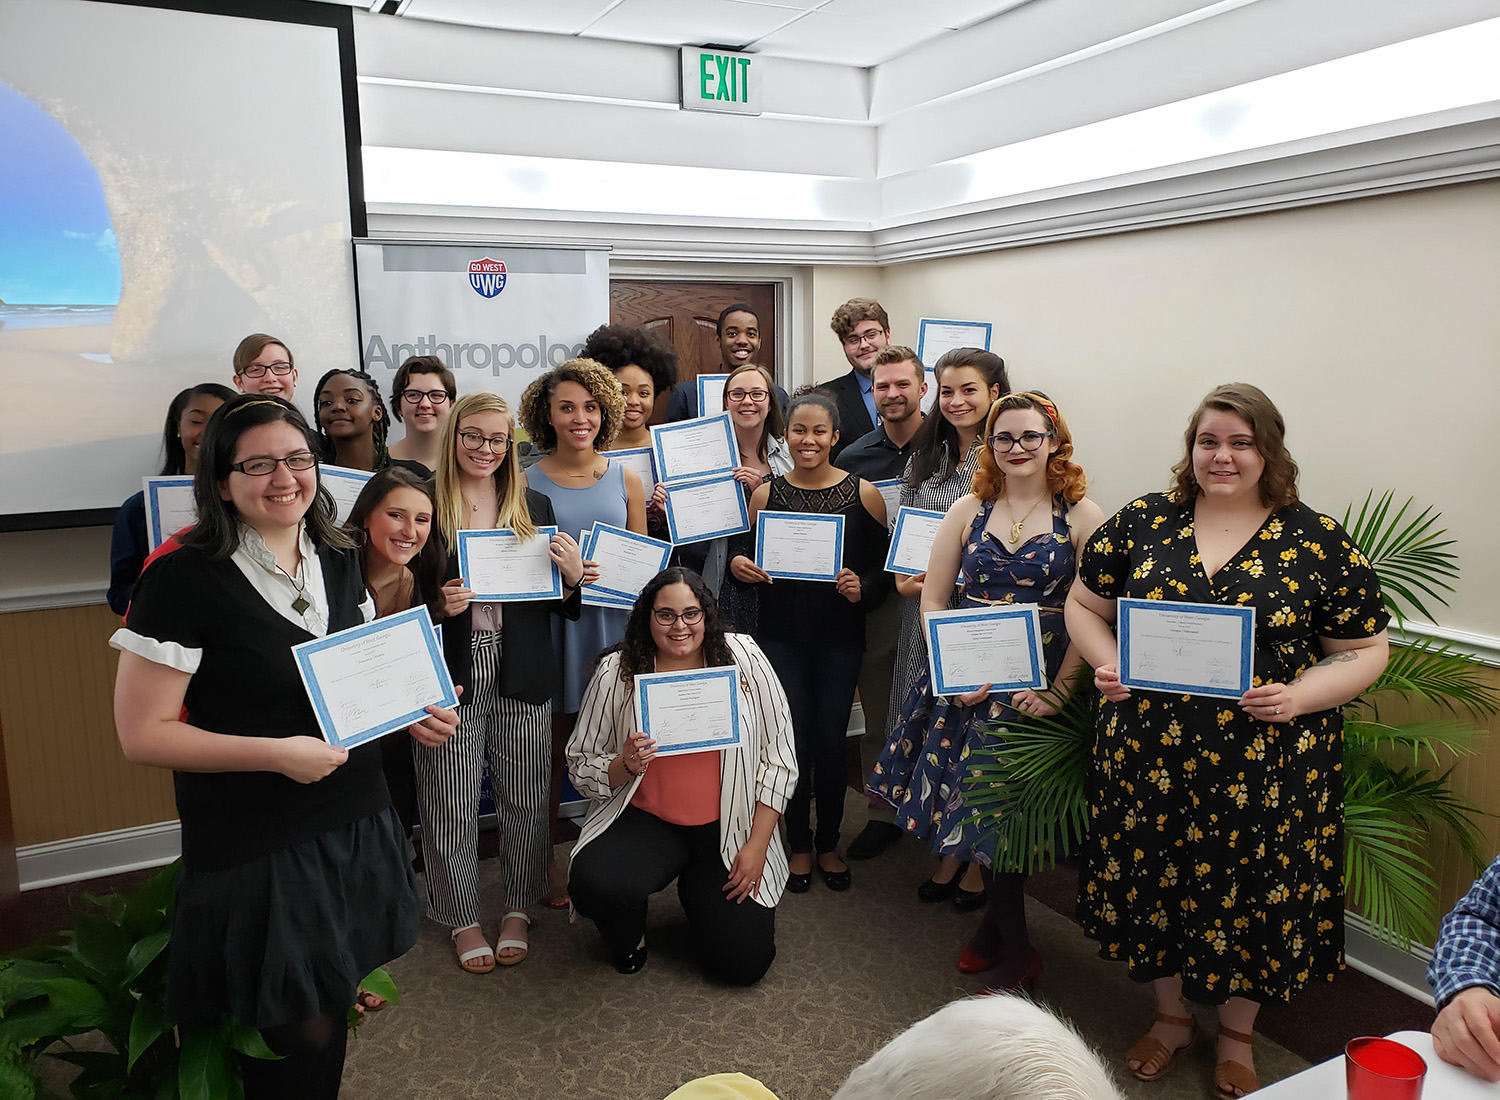 winners of various anthropology scholarships